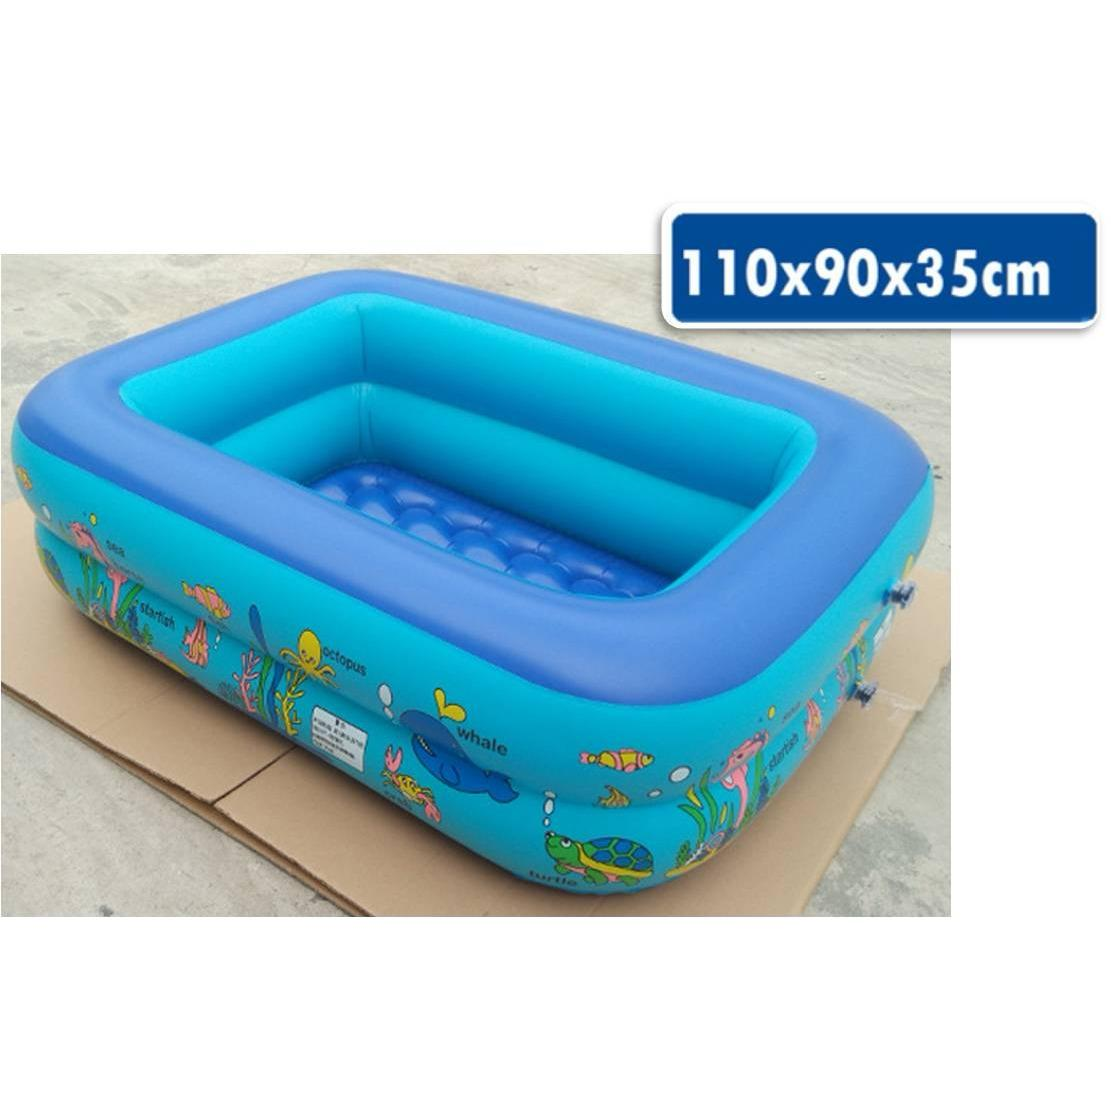 Cheapest Inflatable Swimming Baby Toddler Kids Child Boy G*rl Pool Swim Float Bathtub Tub Intex Shower Wading 110 90 35Cm Online